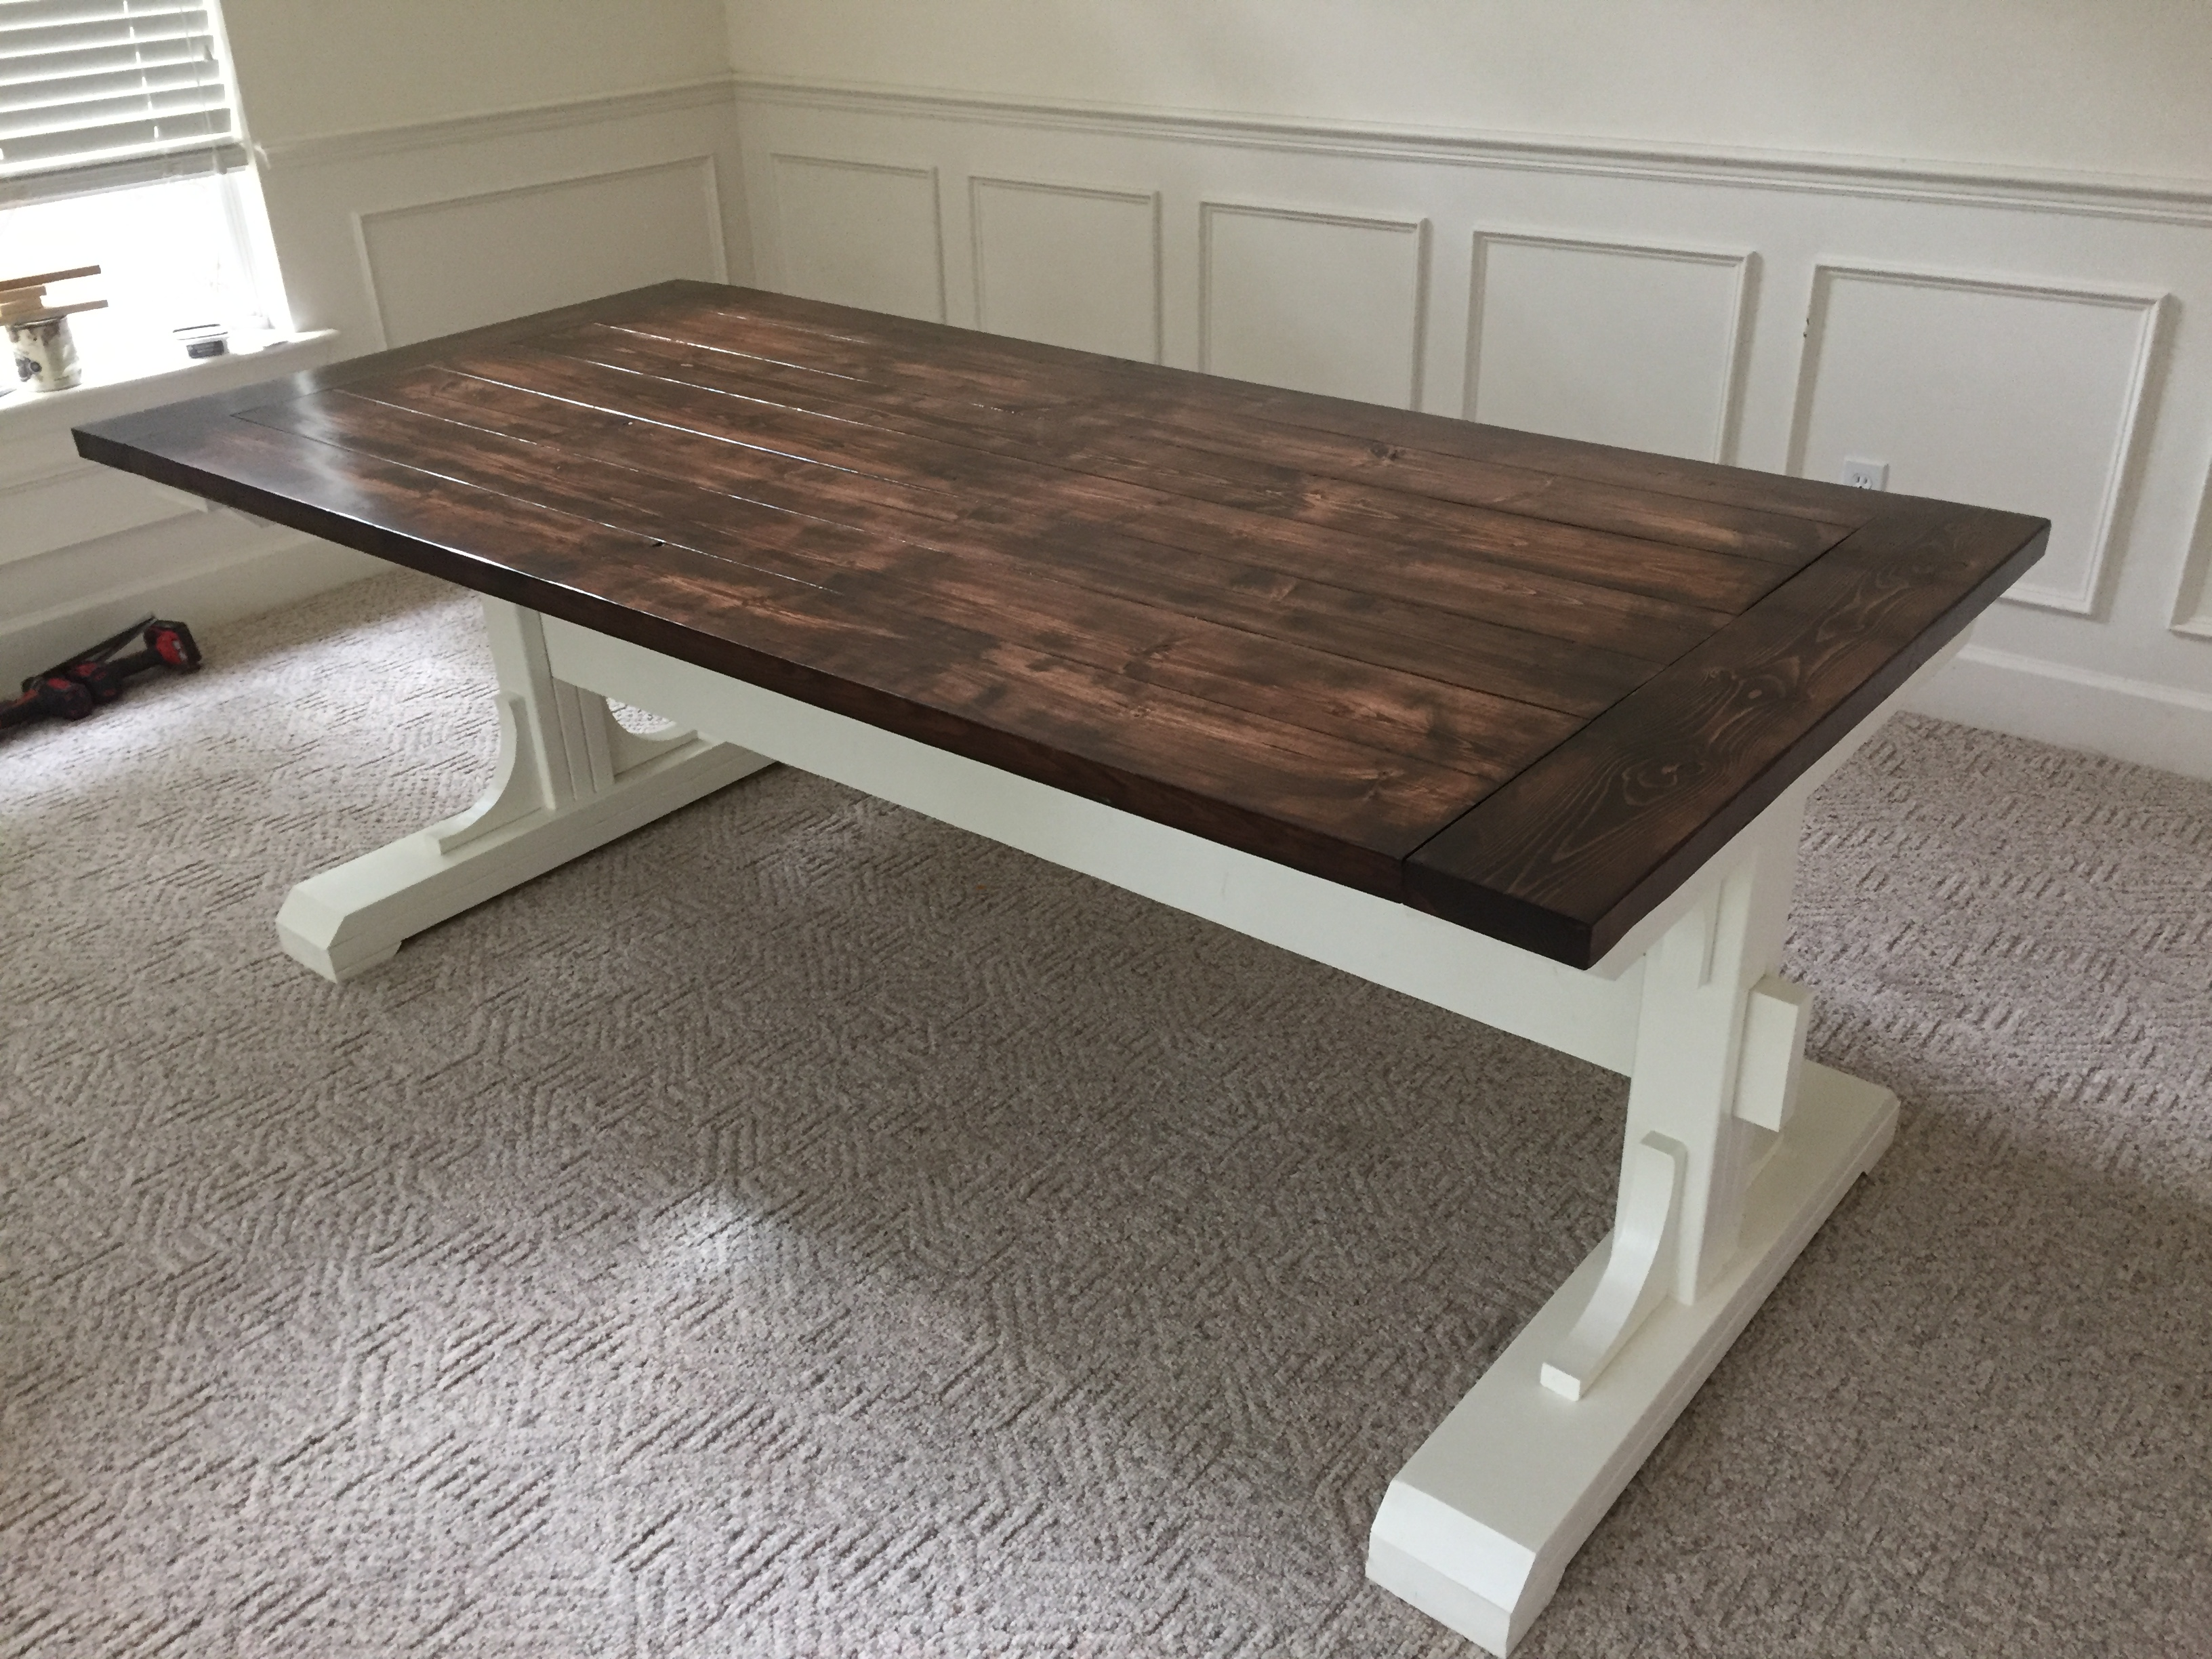 Ana white double pedestal farmhouse table diy projects Diy farmhouse table